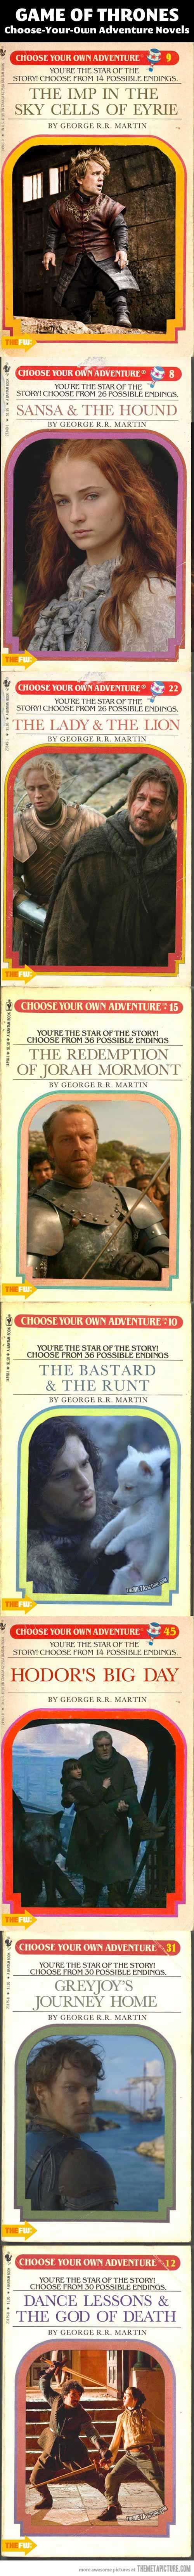 "Game Of Thrones' Choose Your Own Adventure Books… oh, I wish these were real!  Lol at ""Hodor's Big Day"" (which also sounds like a Babysitter's Club title, actually)"